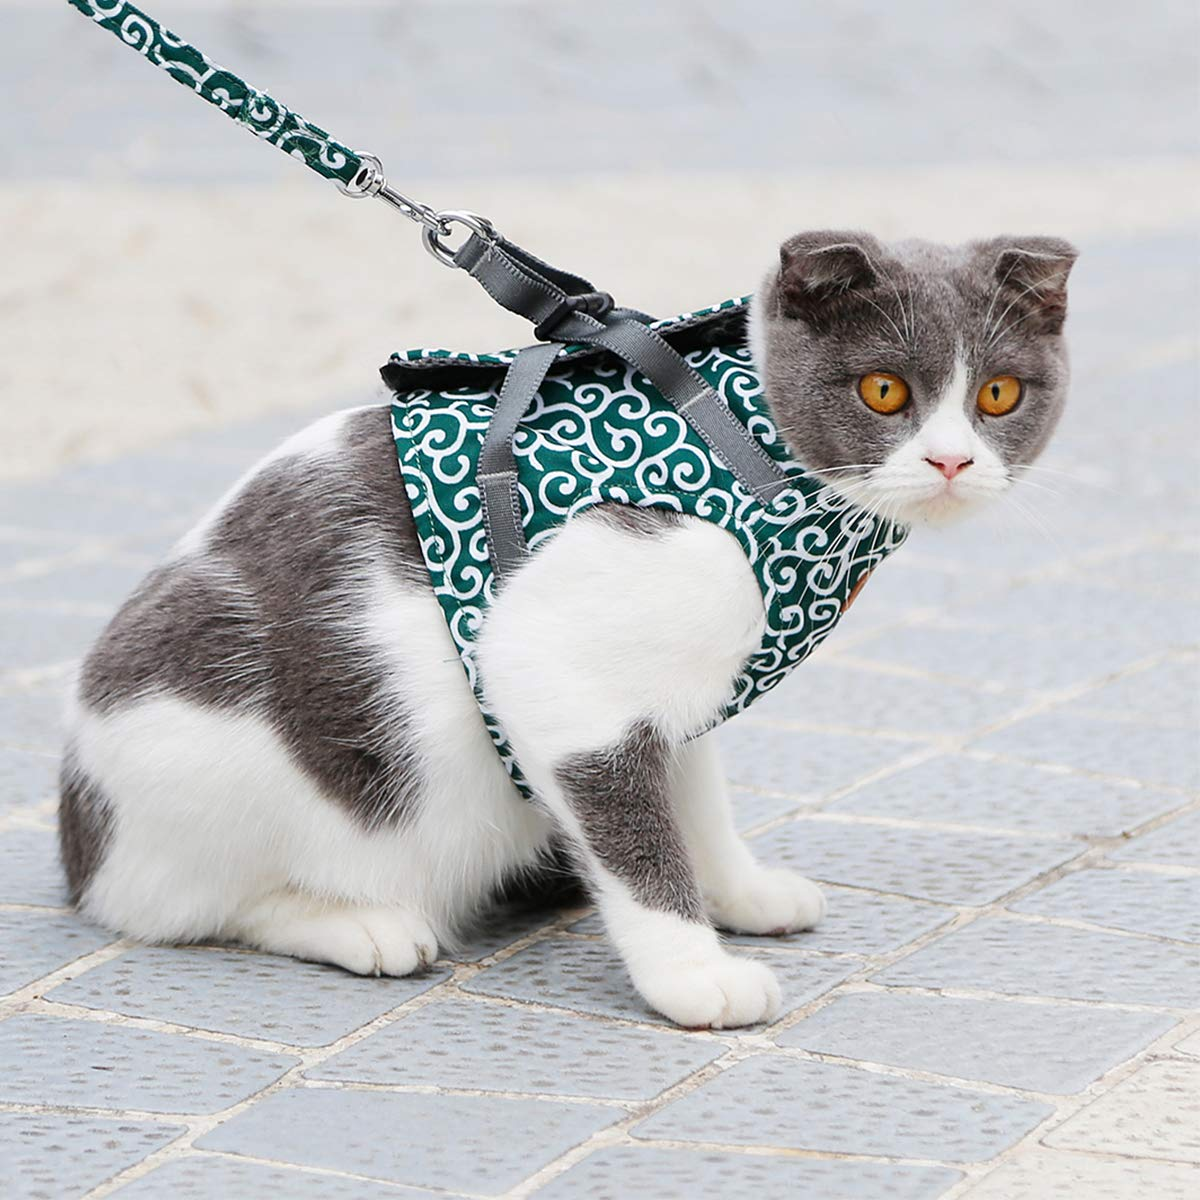 ubest Escape Proof Cat Harness and Lead Set Green Soft Breathable Vest Harness for Cats kitten Small